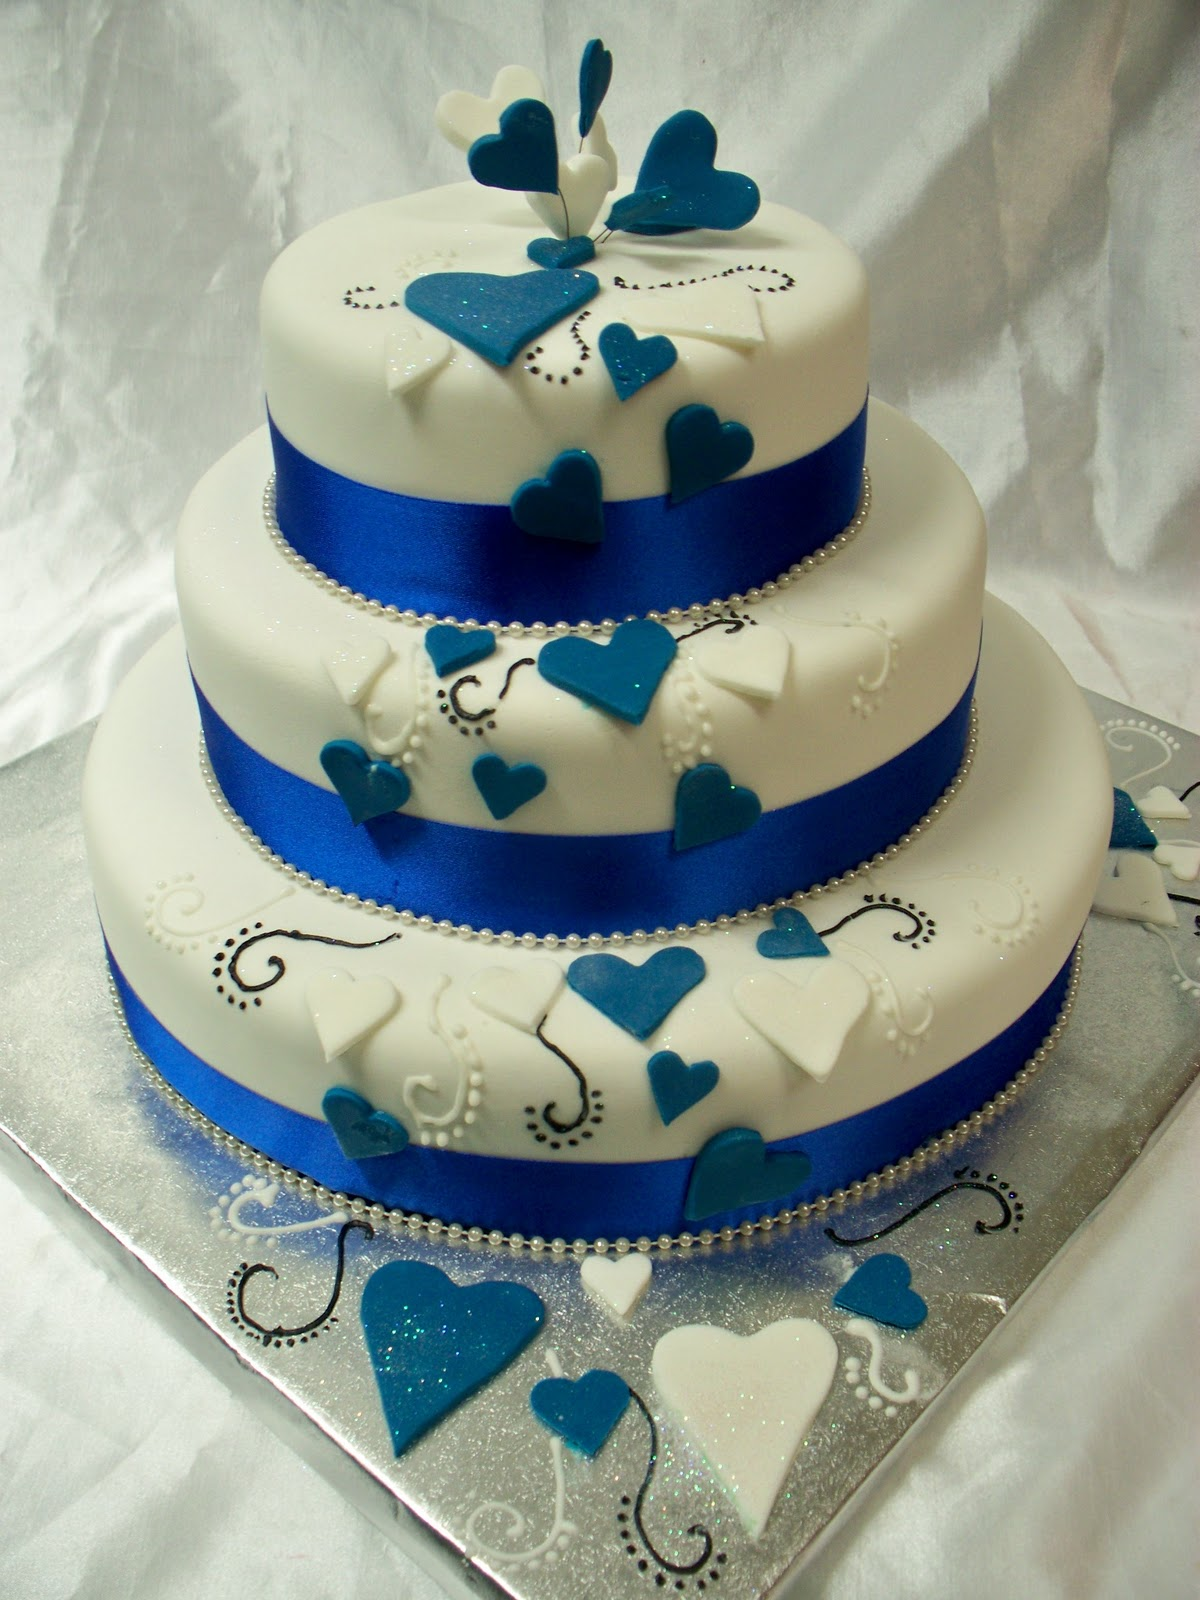 Fresco Foods cakes: AFFORDABLE WEDDING CAKES - BY FRESCO ...